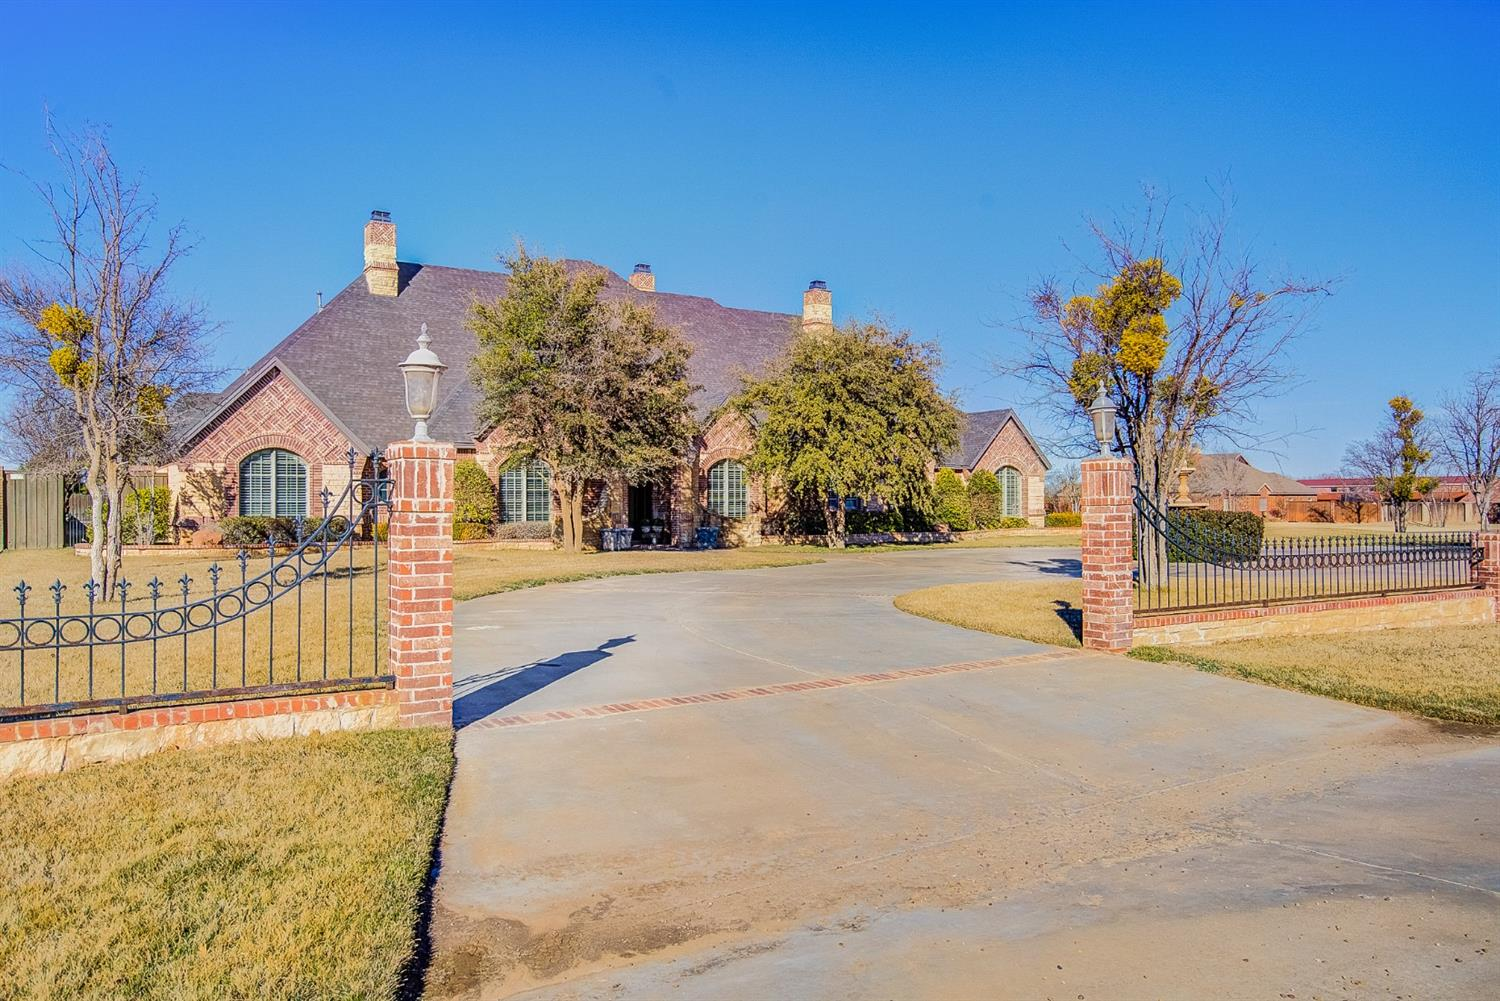 Great Highland Oaks property. 5 bedrooms, 6 baths, 2 kitchens with home and guest house. Over 1 acre lot. Surround sound throughout home. Pool (gunite and automatic cover). Mature landscaping, shop/garage that is heated and cooled. 3 wells with ample water.